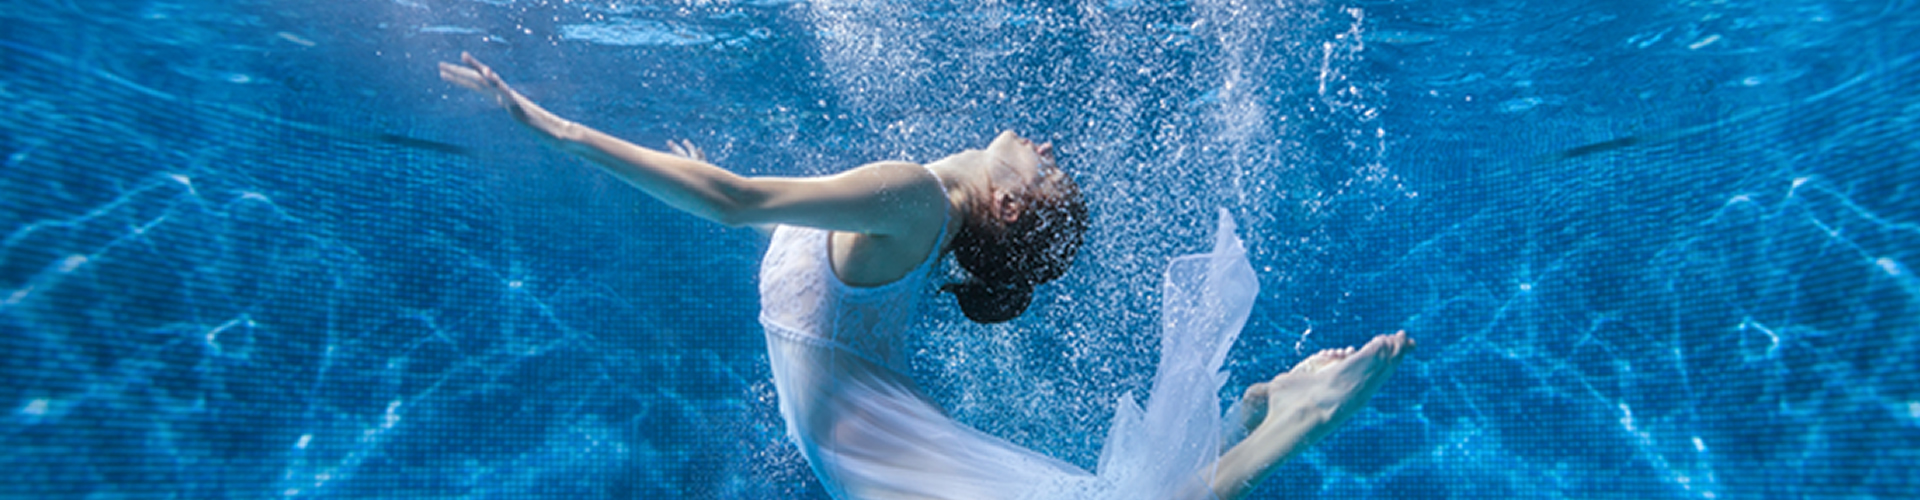 Woman floating in pool arched back